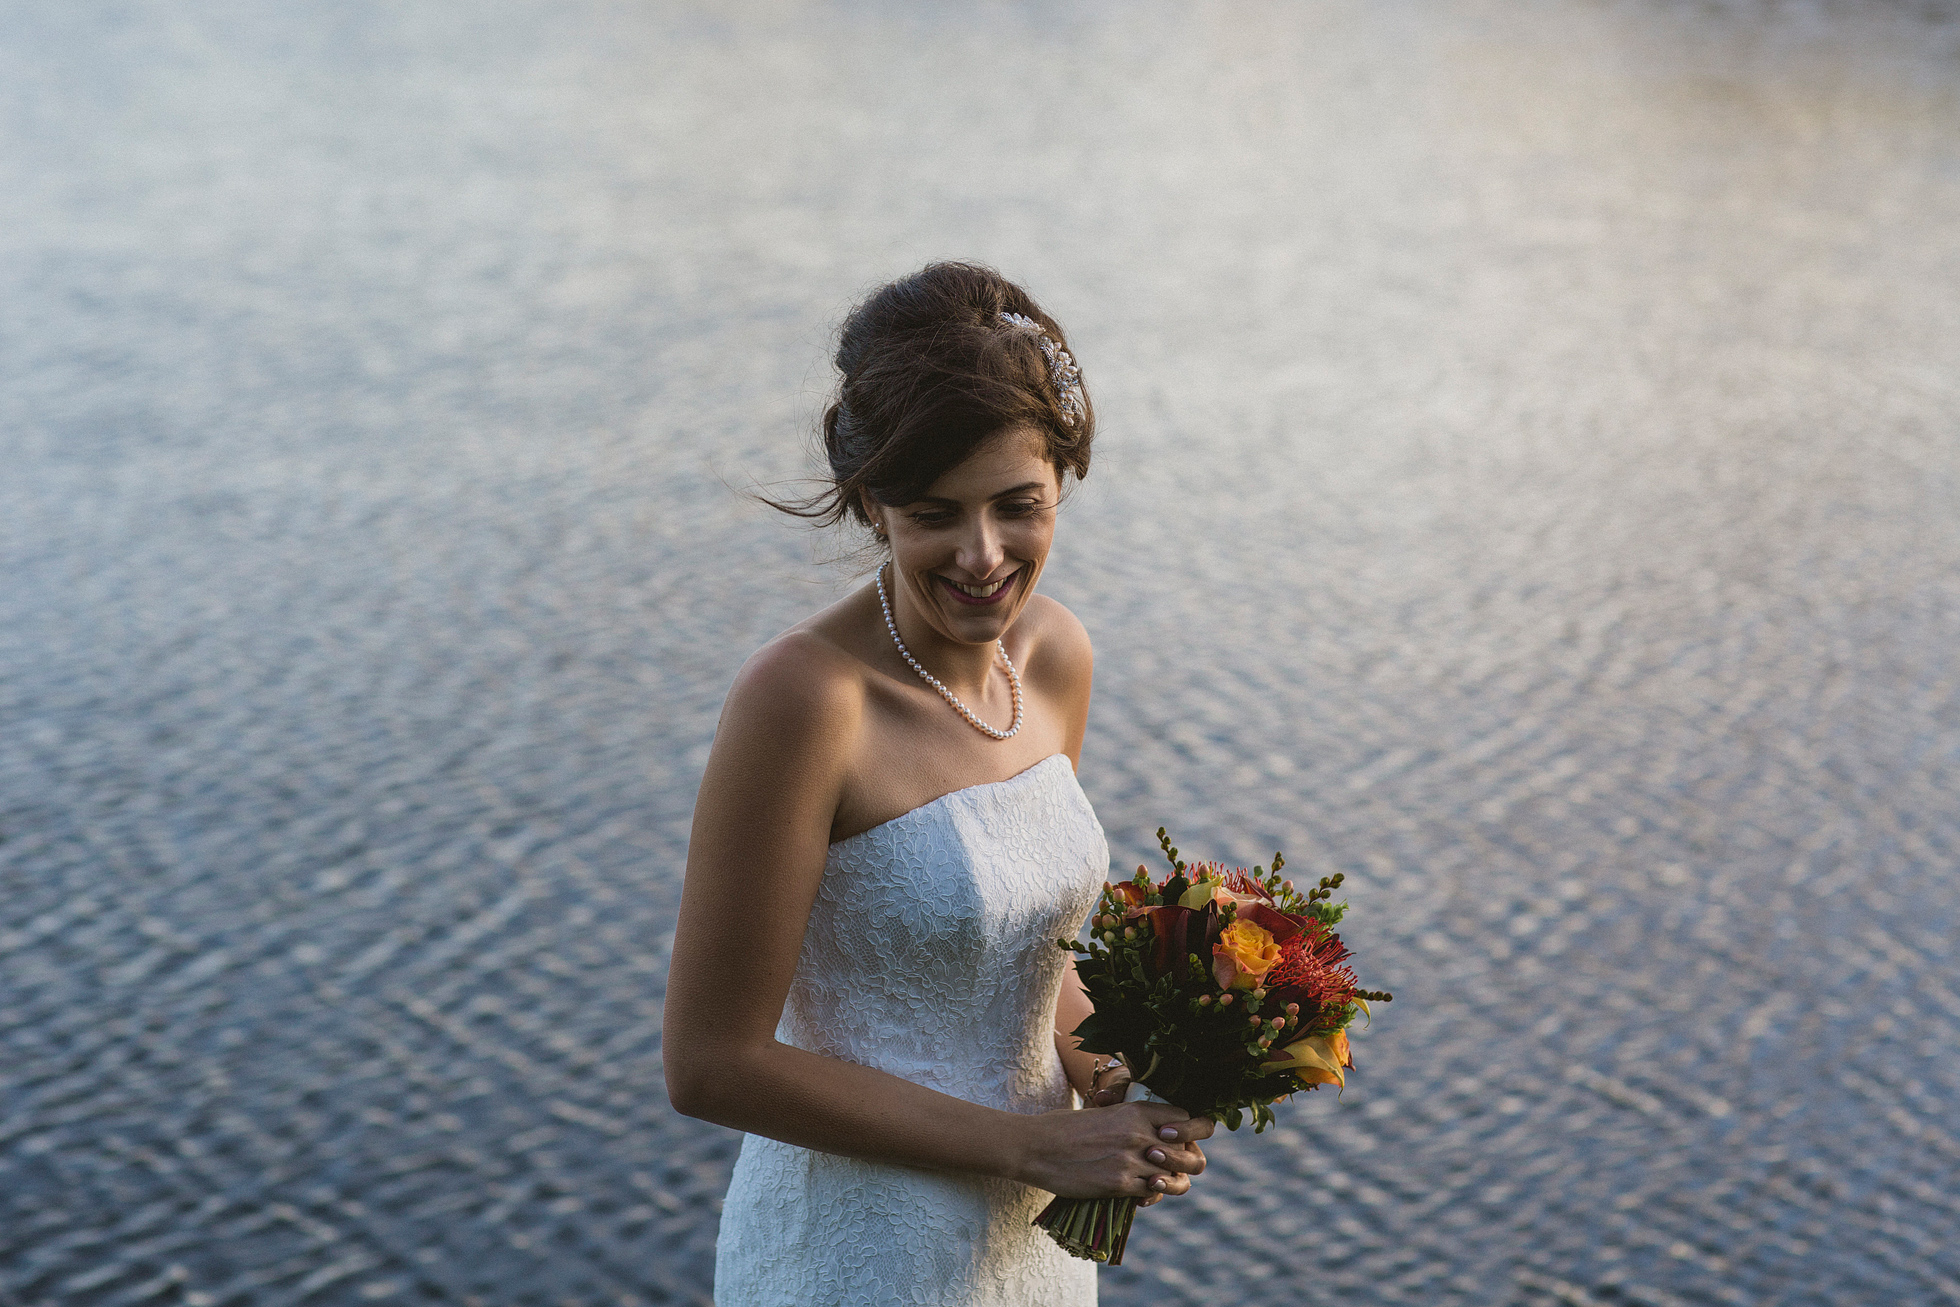 South Farm bride portrait